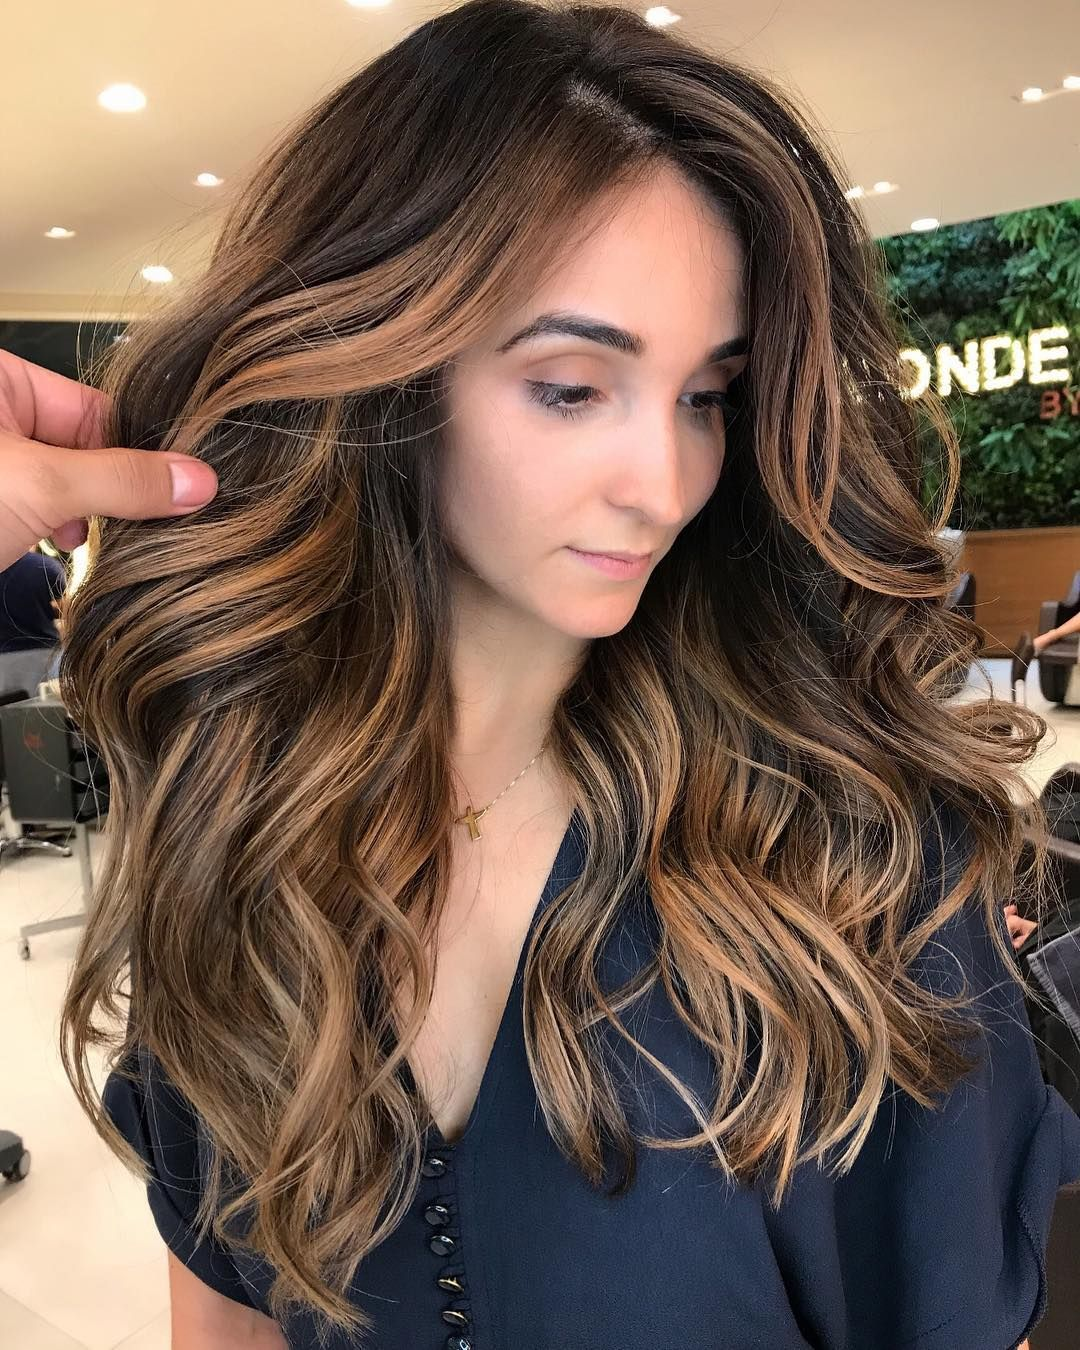 90 Best Long Layered Haircuts Hairstyles For Long Hair 2020 Long Layered Haircuts Blowout Hair Layered Haircuts